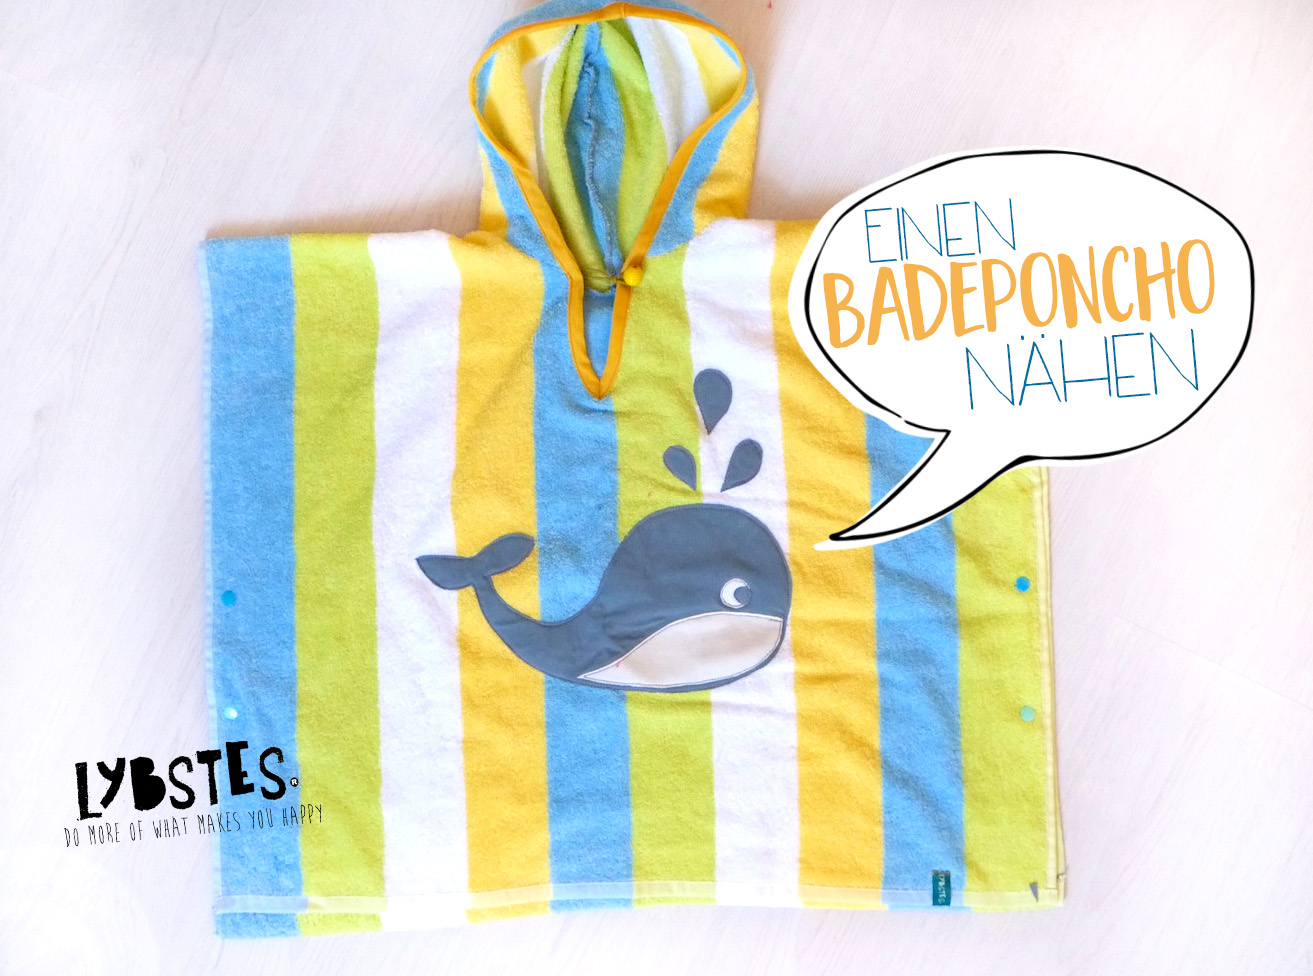 Baby Badeponcho Beachtime Badeponcho Mit Kapuze Selber Nähen Lybstes